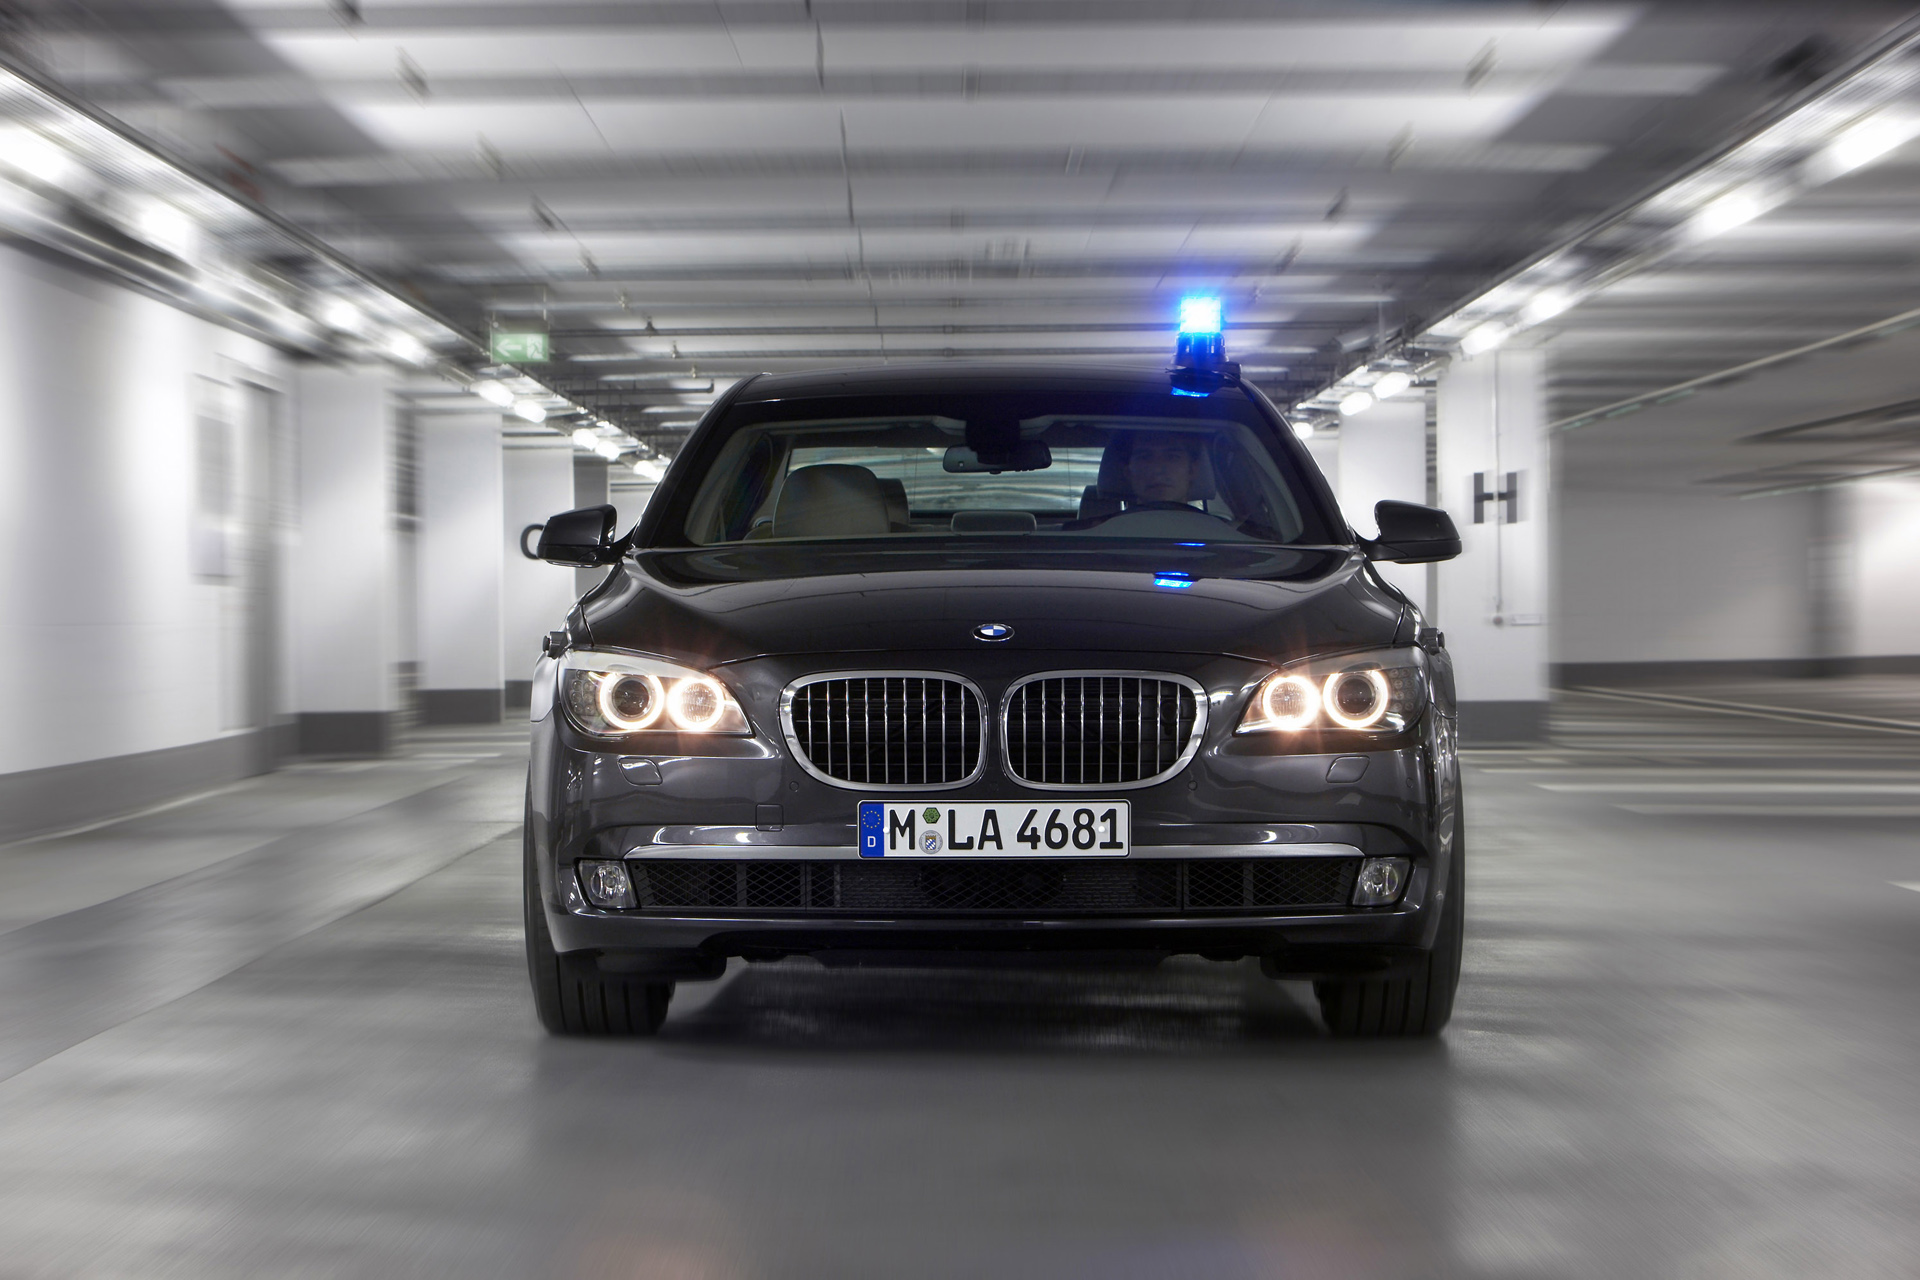 Bmw 7 Series High Security Photos Photogallery With 21 Pics